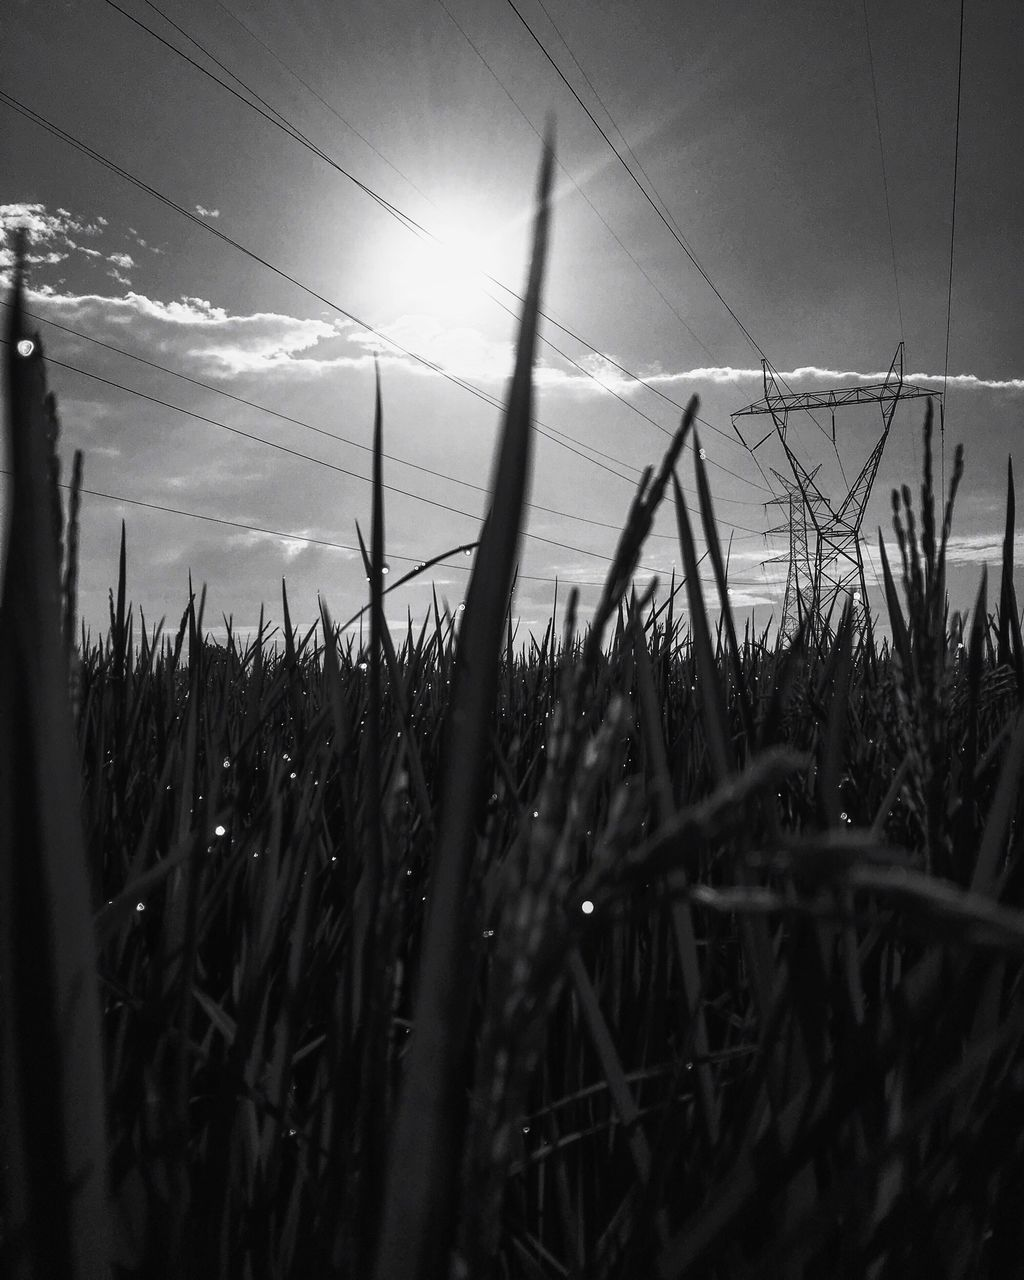 field, growth, nature, cable, grass, electricity pylon, sky, electricity, no people, sun, plant, tranquility, sunlight, outdoors, beauty in nature, day